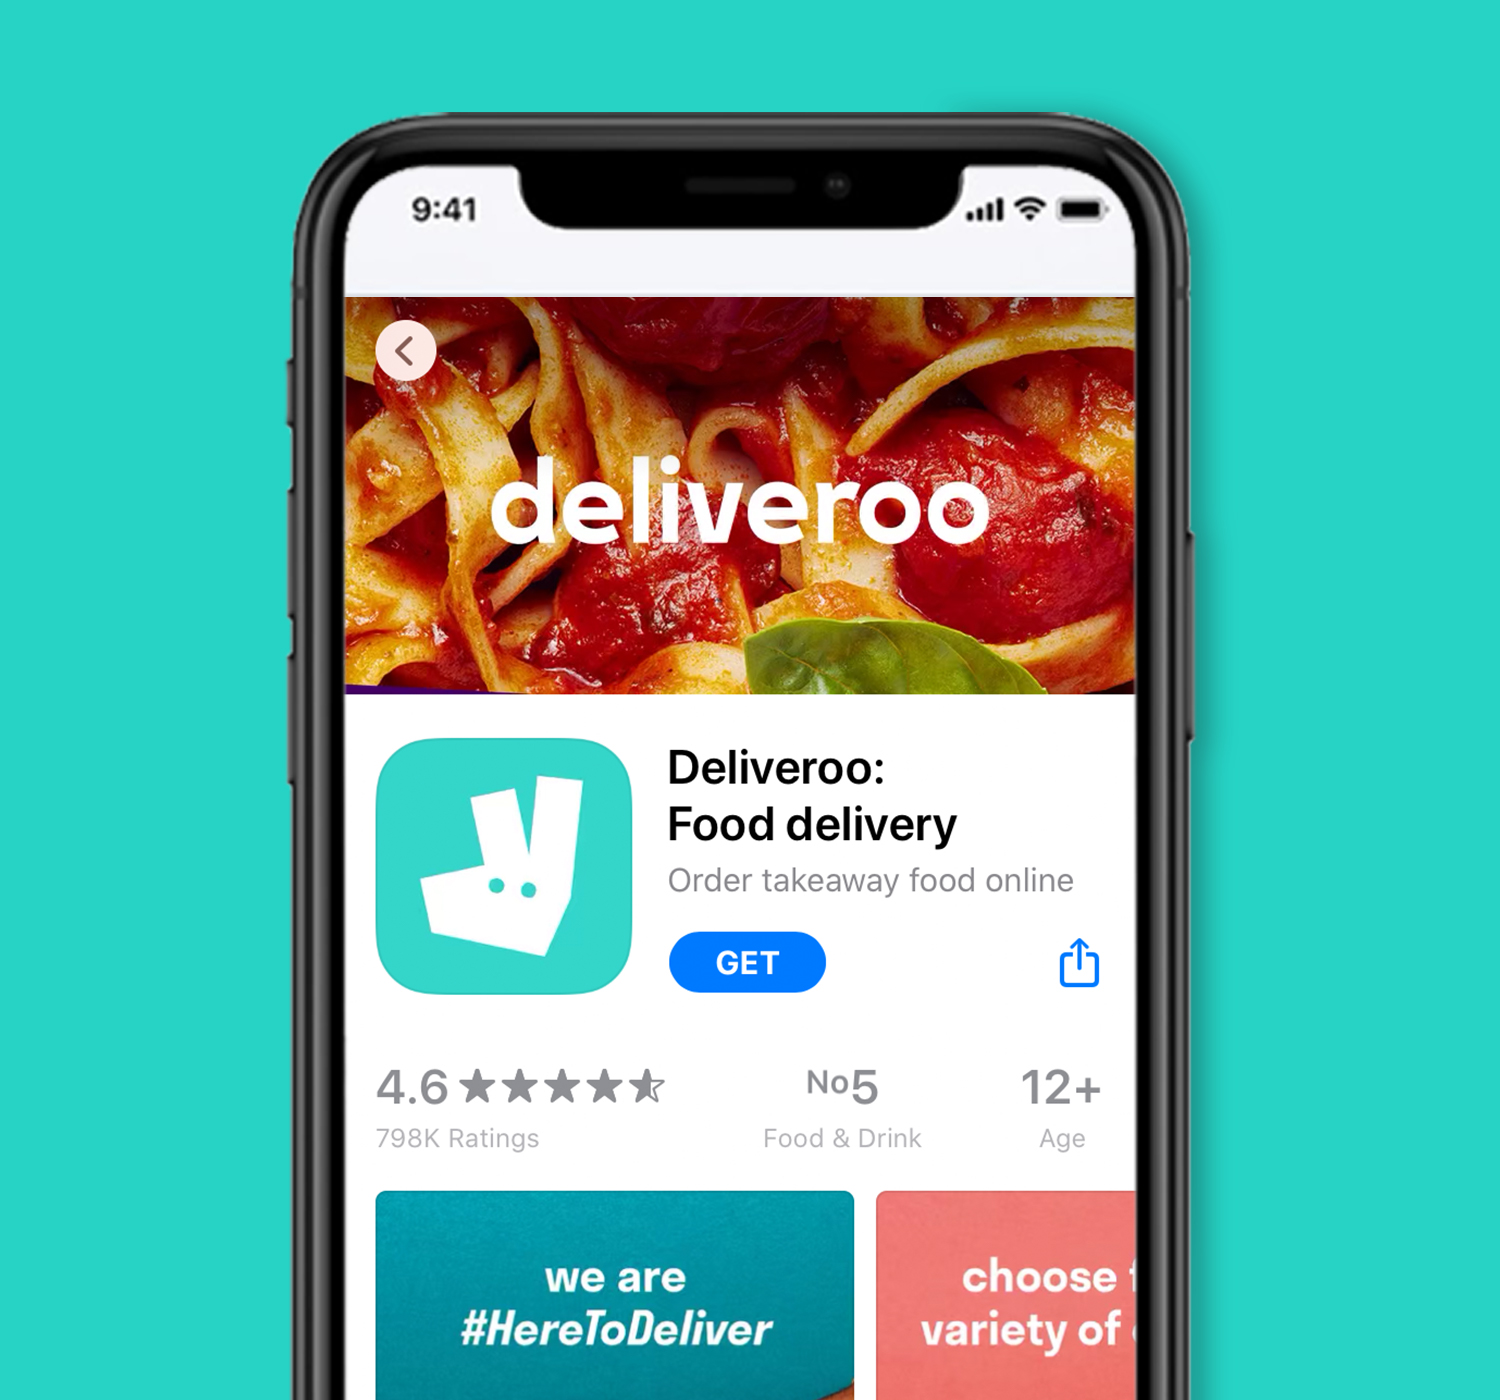 Image of Deliveroo app homepage